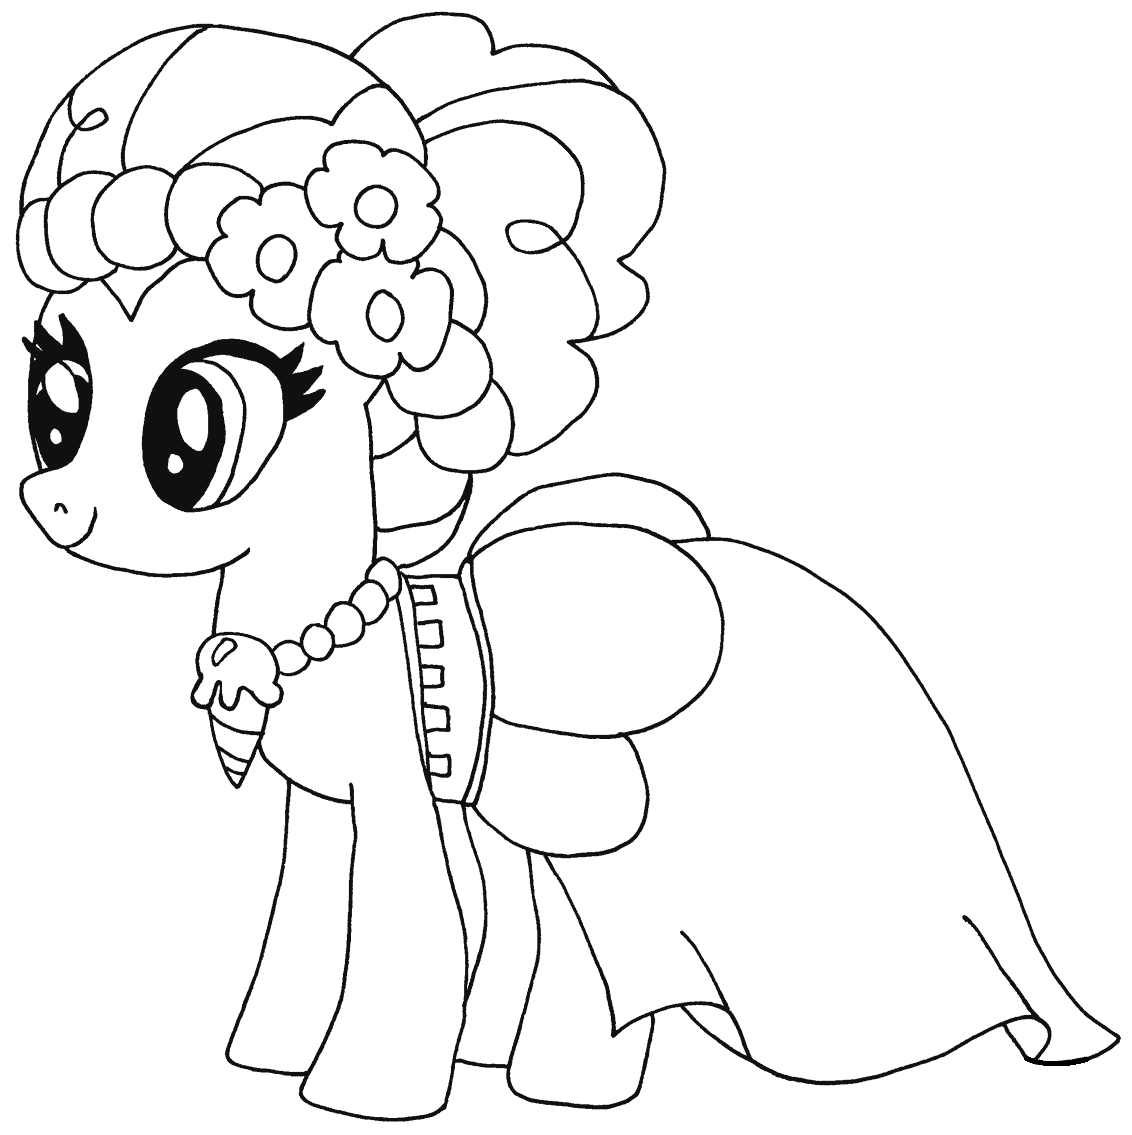 coloring pinkie pie lovely pinkie pie coloring page free printable coloring pinkie pie coloring